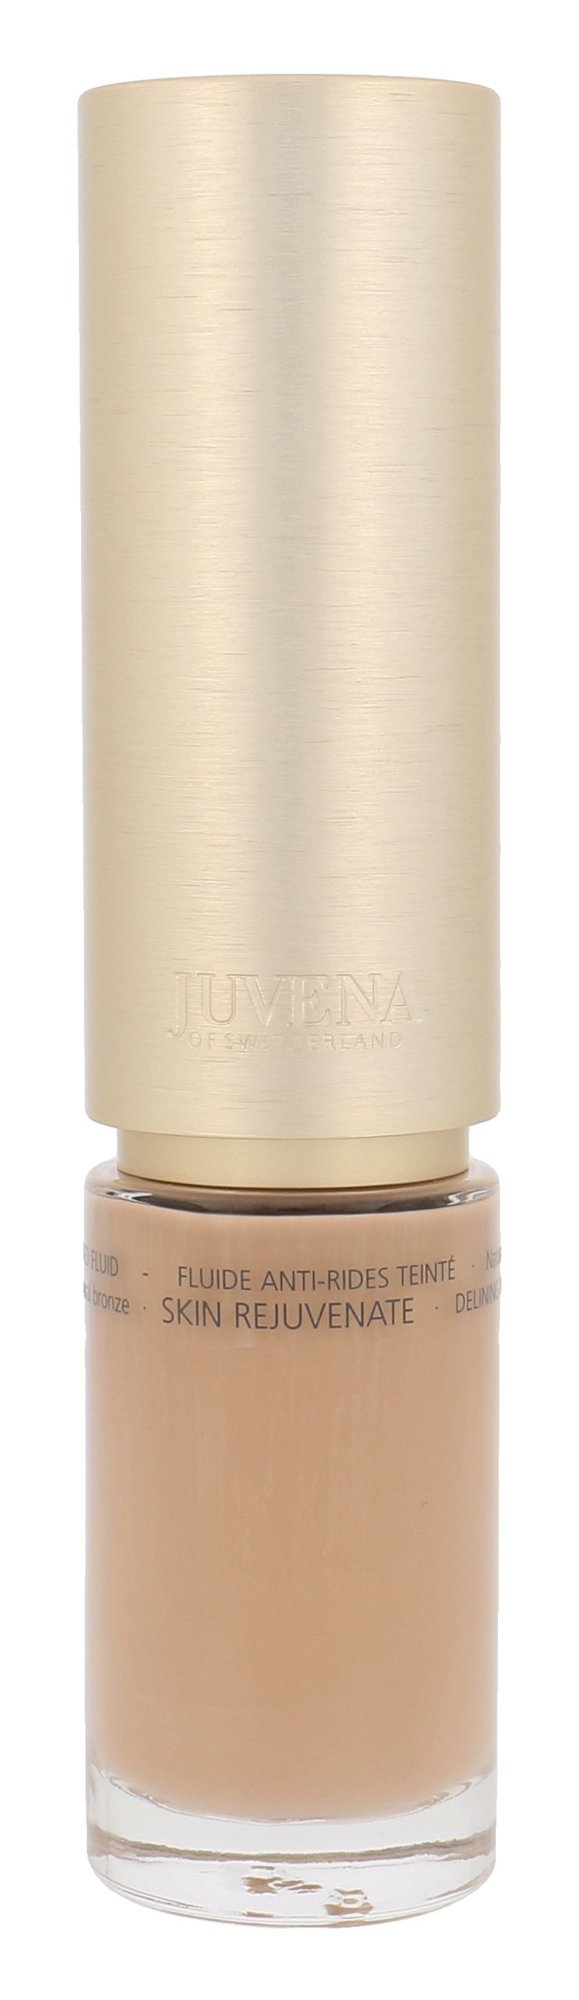 Juvena Skin Rejuvenate Cosmetic 50ml Natural Bronze